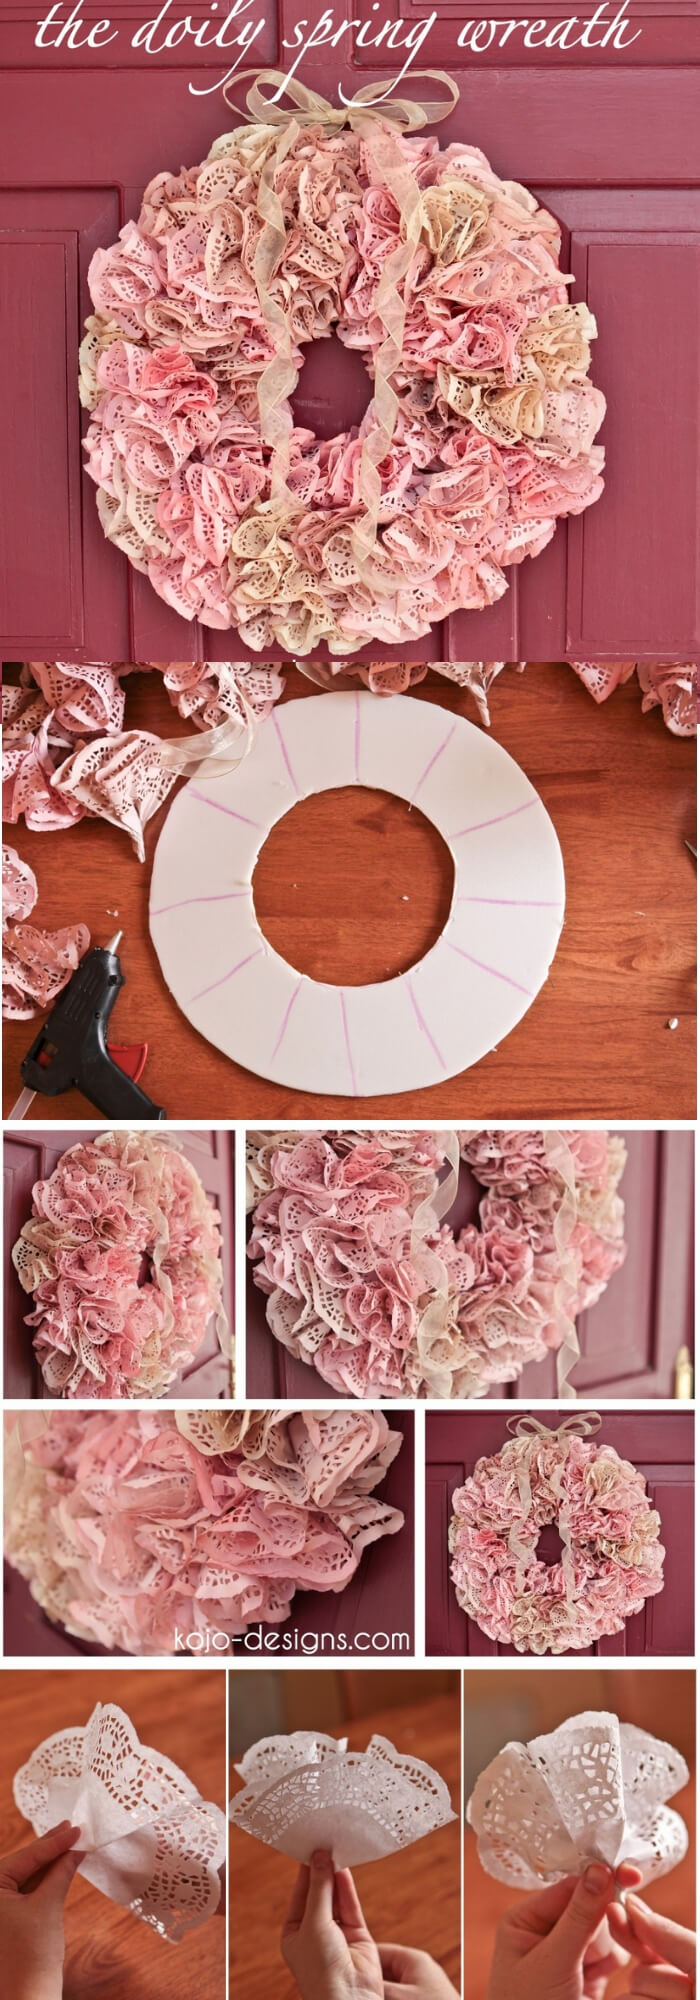 Easy and Simple DIY Spring Wreath Ideas | The doily Spring Wreath